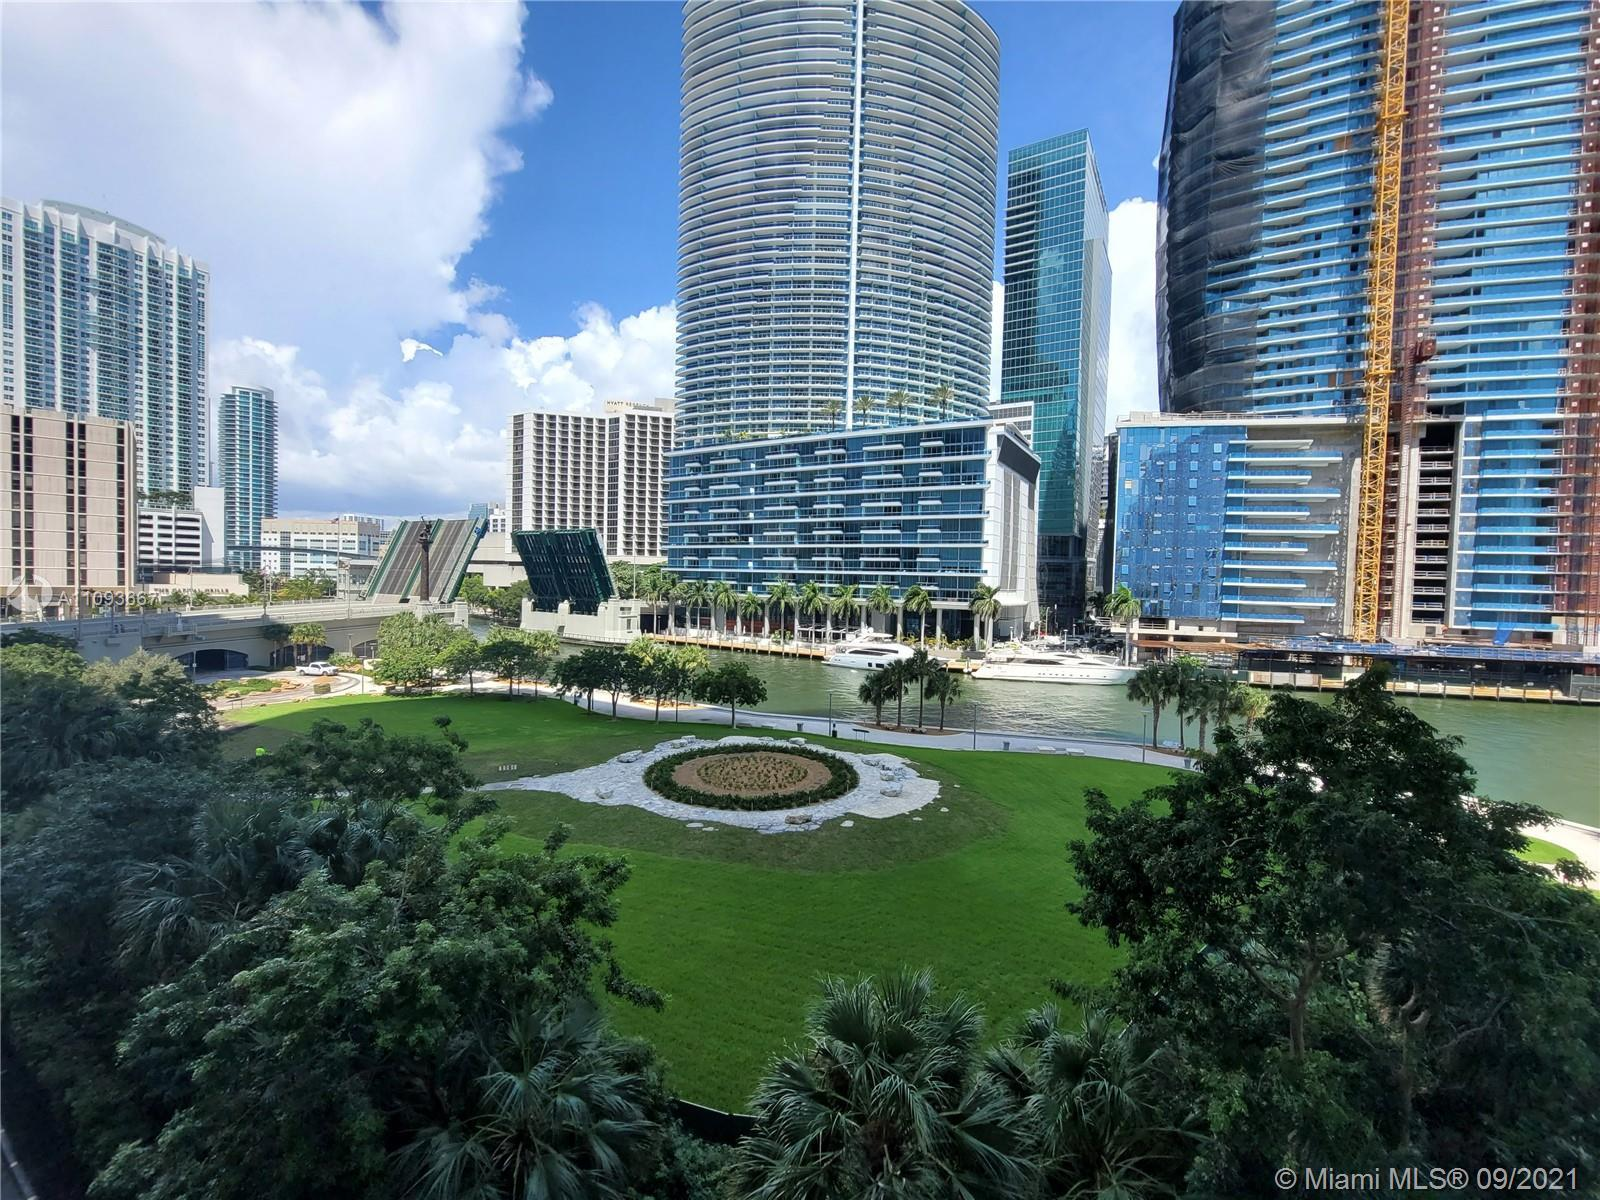 Miami Riches presents spacious 1bed/1bath condo in the most desirable building in Brickell, full ser